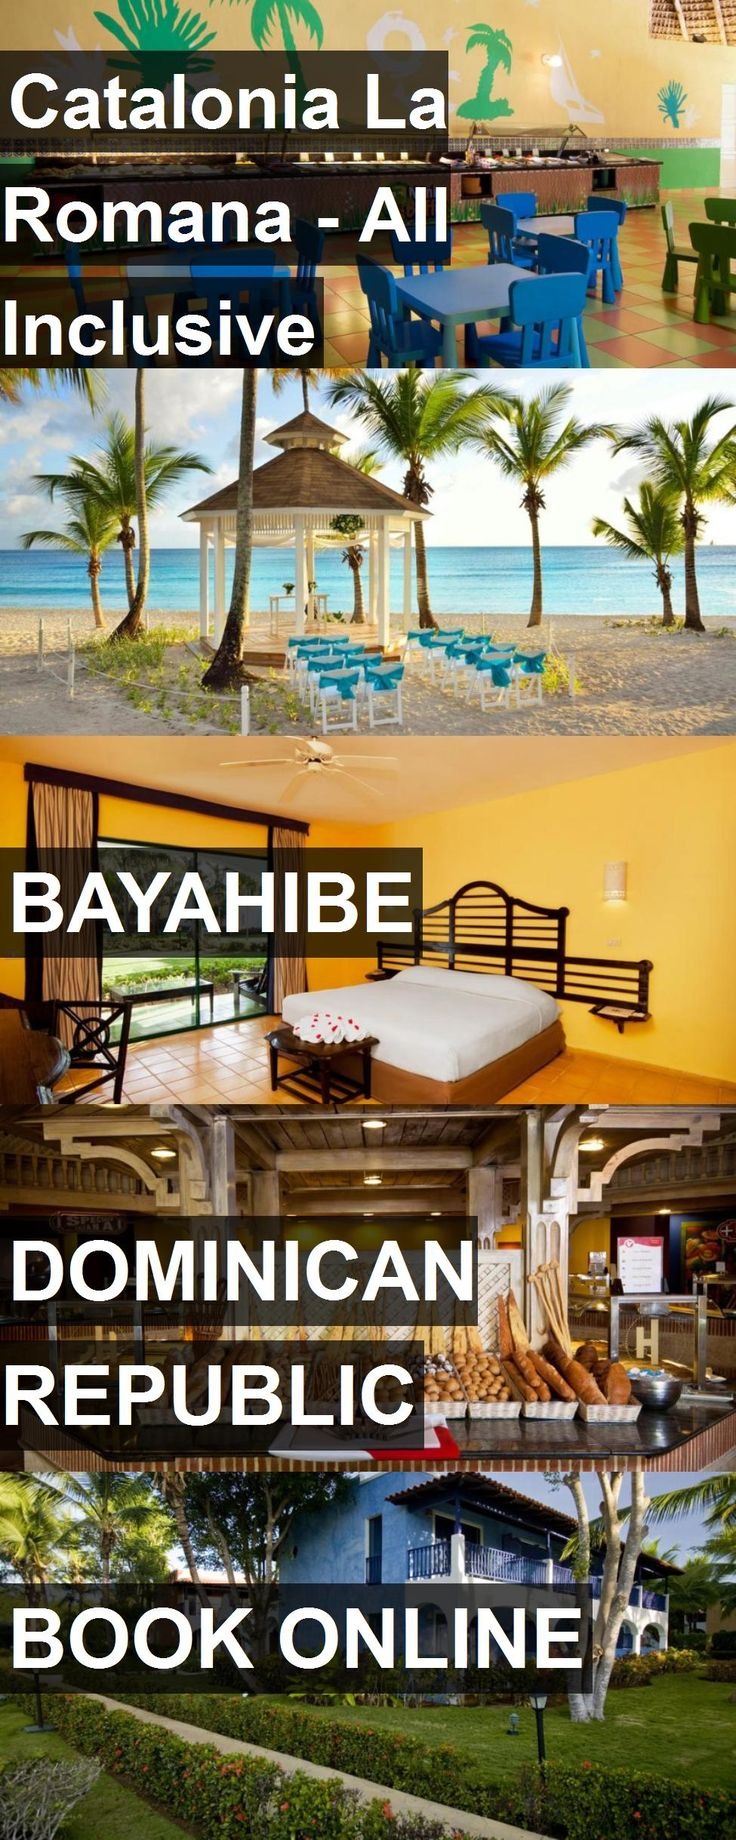 Hotel Catalonia La Romana - All Inclusive in Bayahibe, Dominican Republic. For more information, photos, reviews and best prices please follow the link. #DominicanRepublic #Bayahibe #CataloniaLaRomana-AllInclusive #hotel #travel #vacation